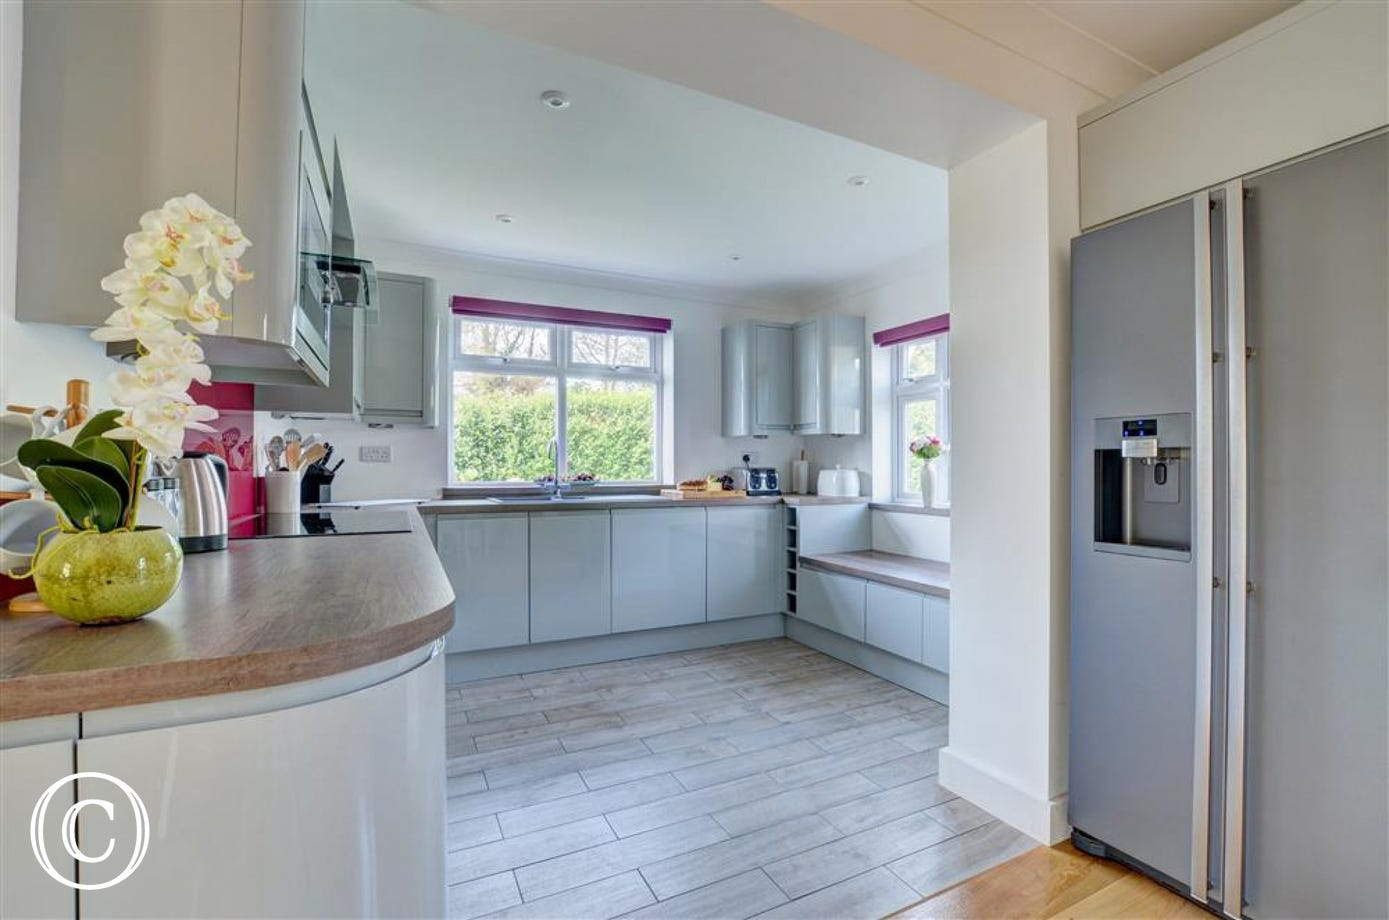 Spacious and contemporary kitchen with huge American style fridge/freezer